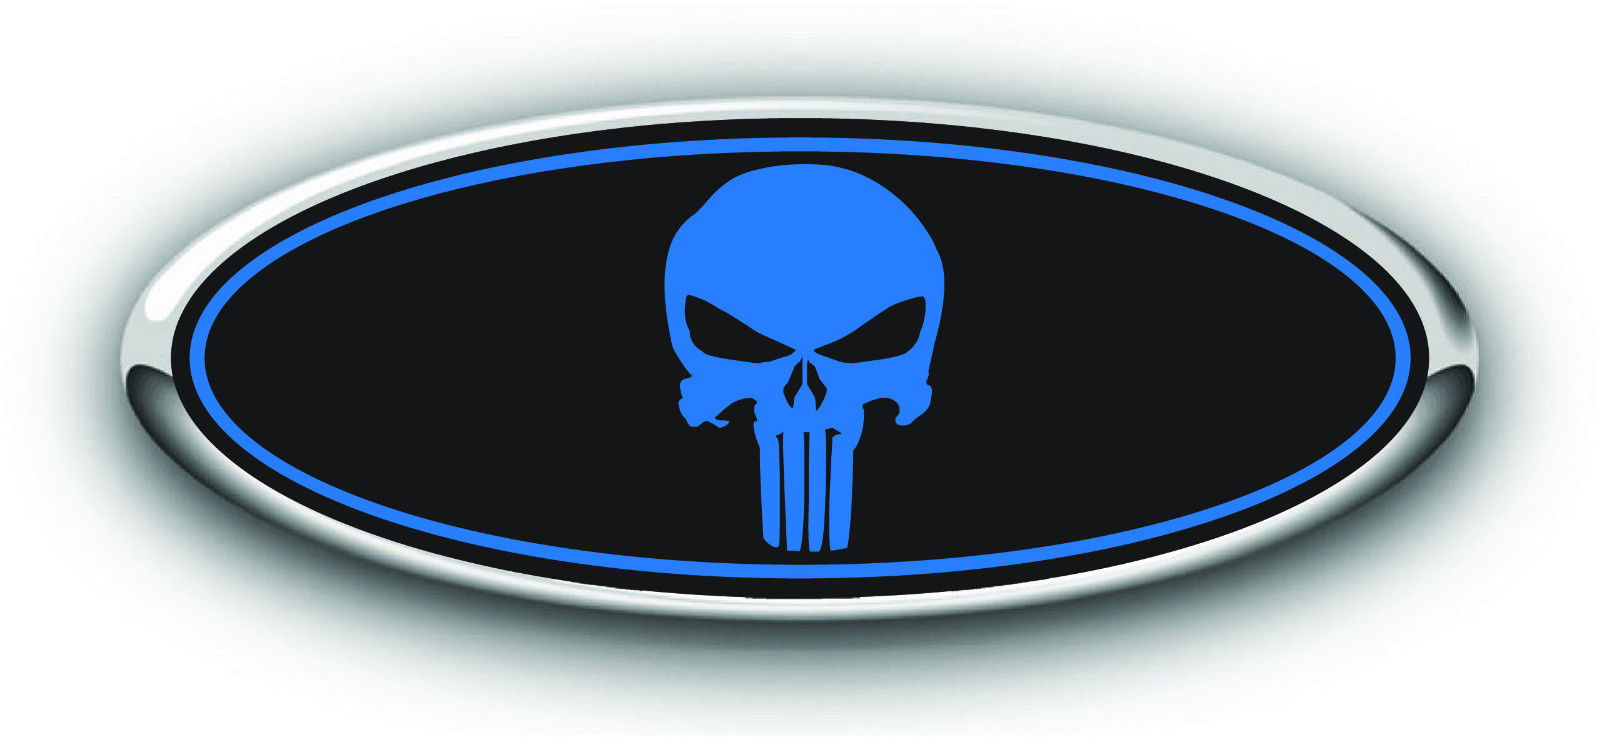 Ford Punisher Decals Darkside Racing Art Ford Overlay